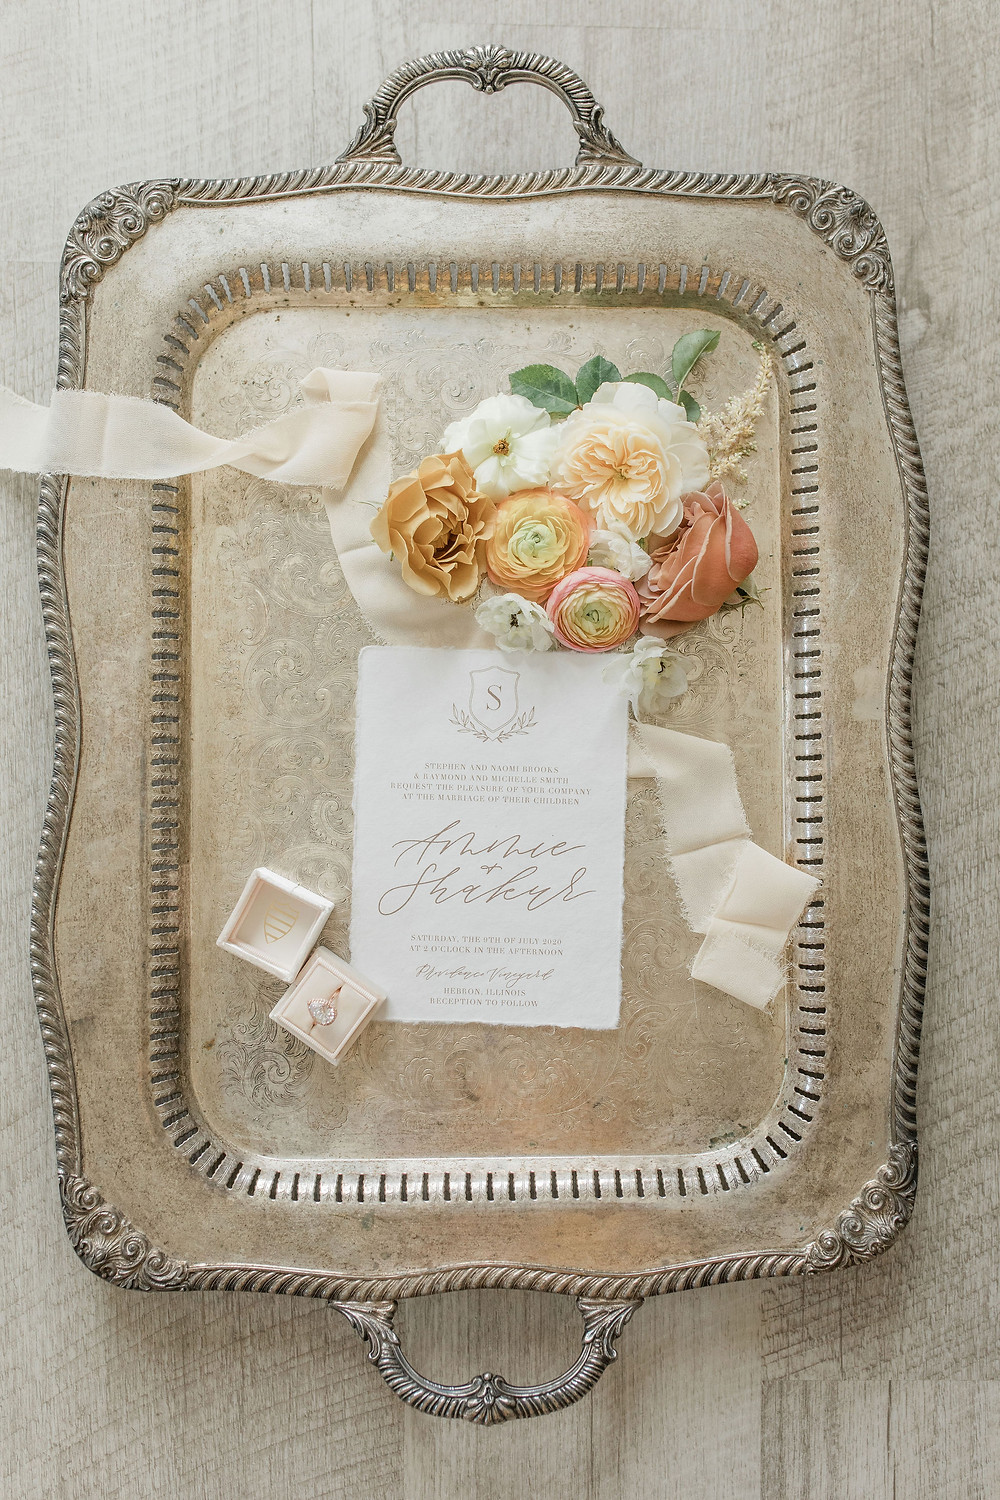 Vintage silver trays provide a great surface for details for your photographer, including flowers, ribbon, rings, and invitations!